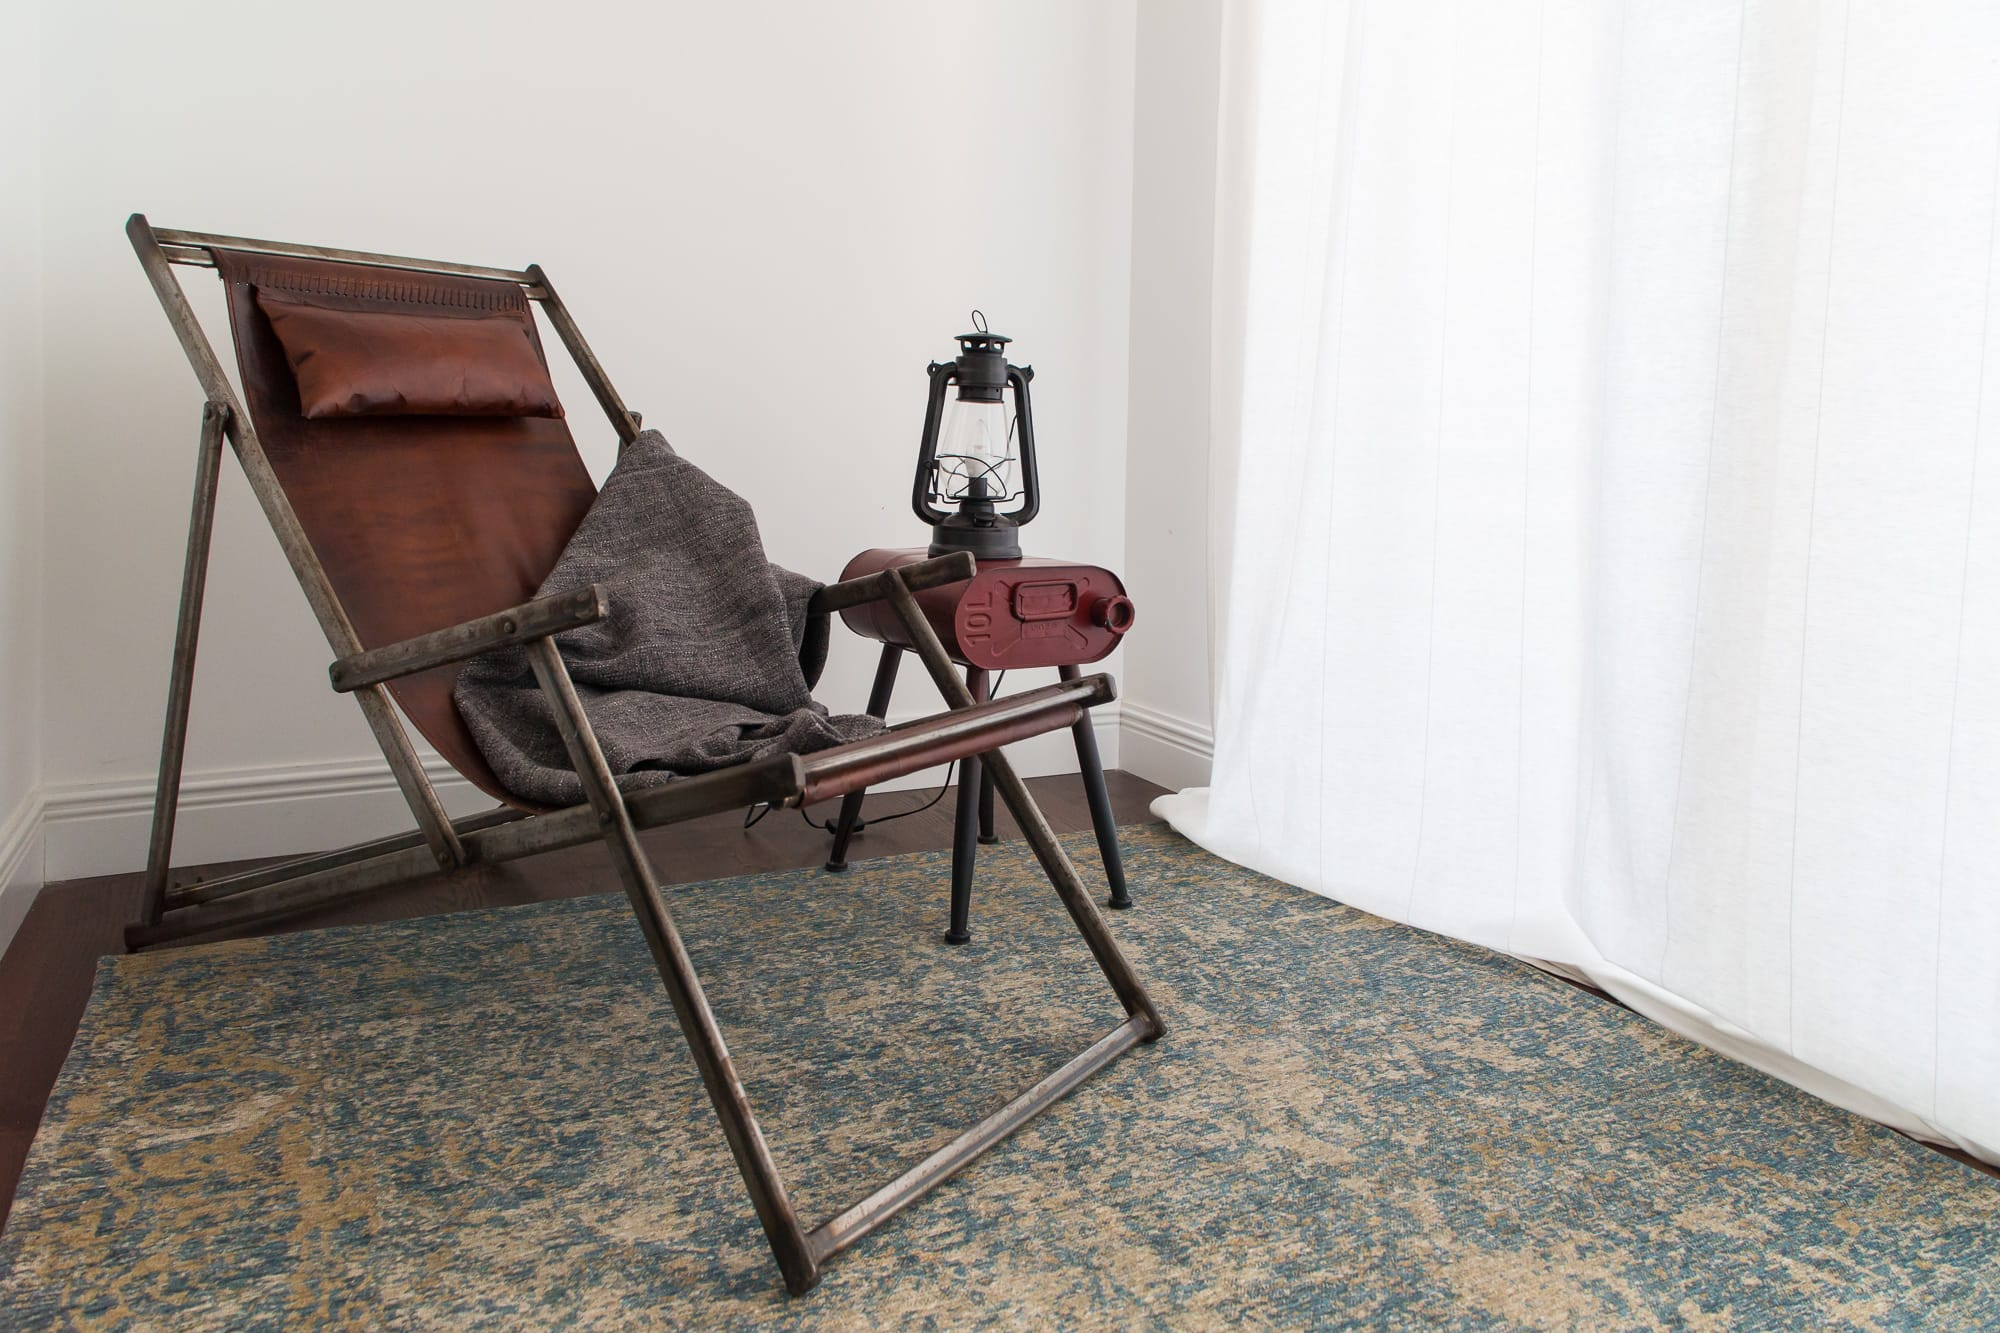 Leather and metal lounge chair on a blue abstract rug with an industrial side table.